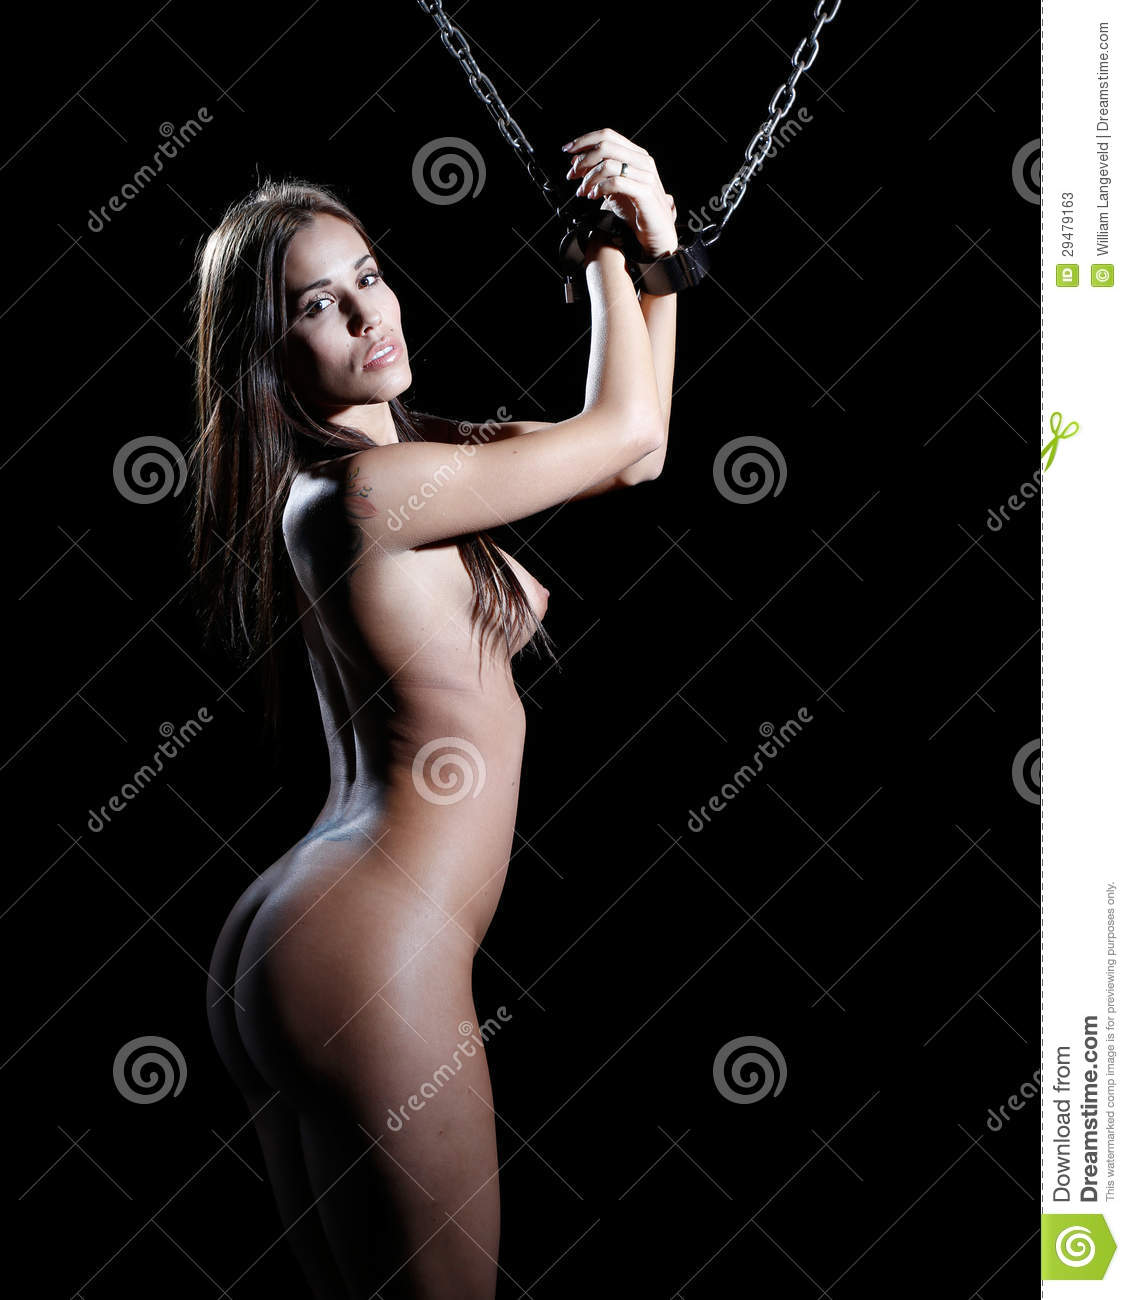 Bondage Art Style With Nude Or Naked Woman Tied Up With A -3720